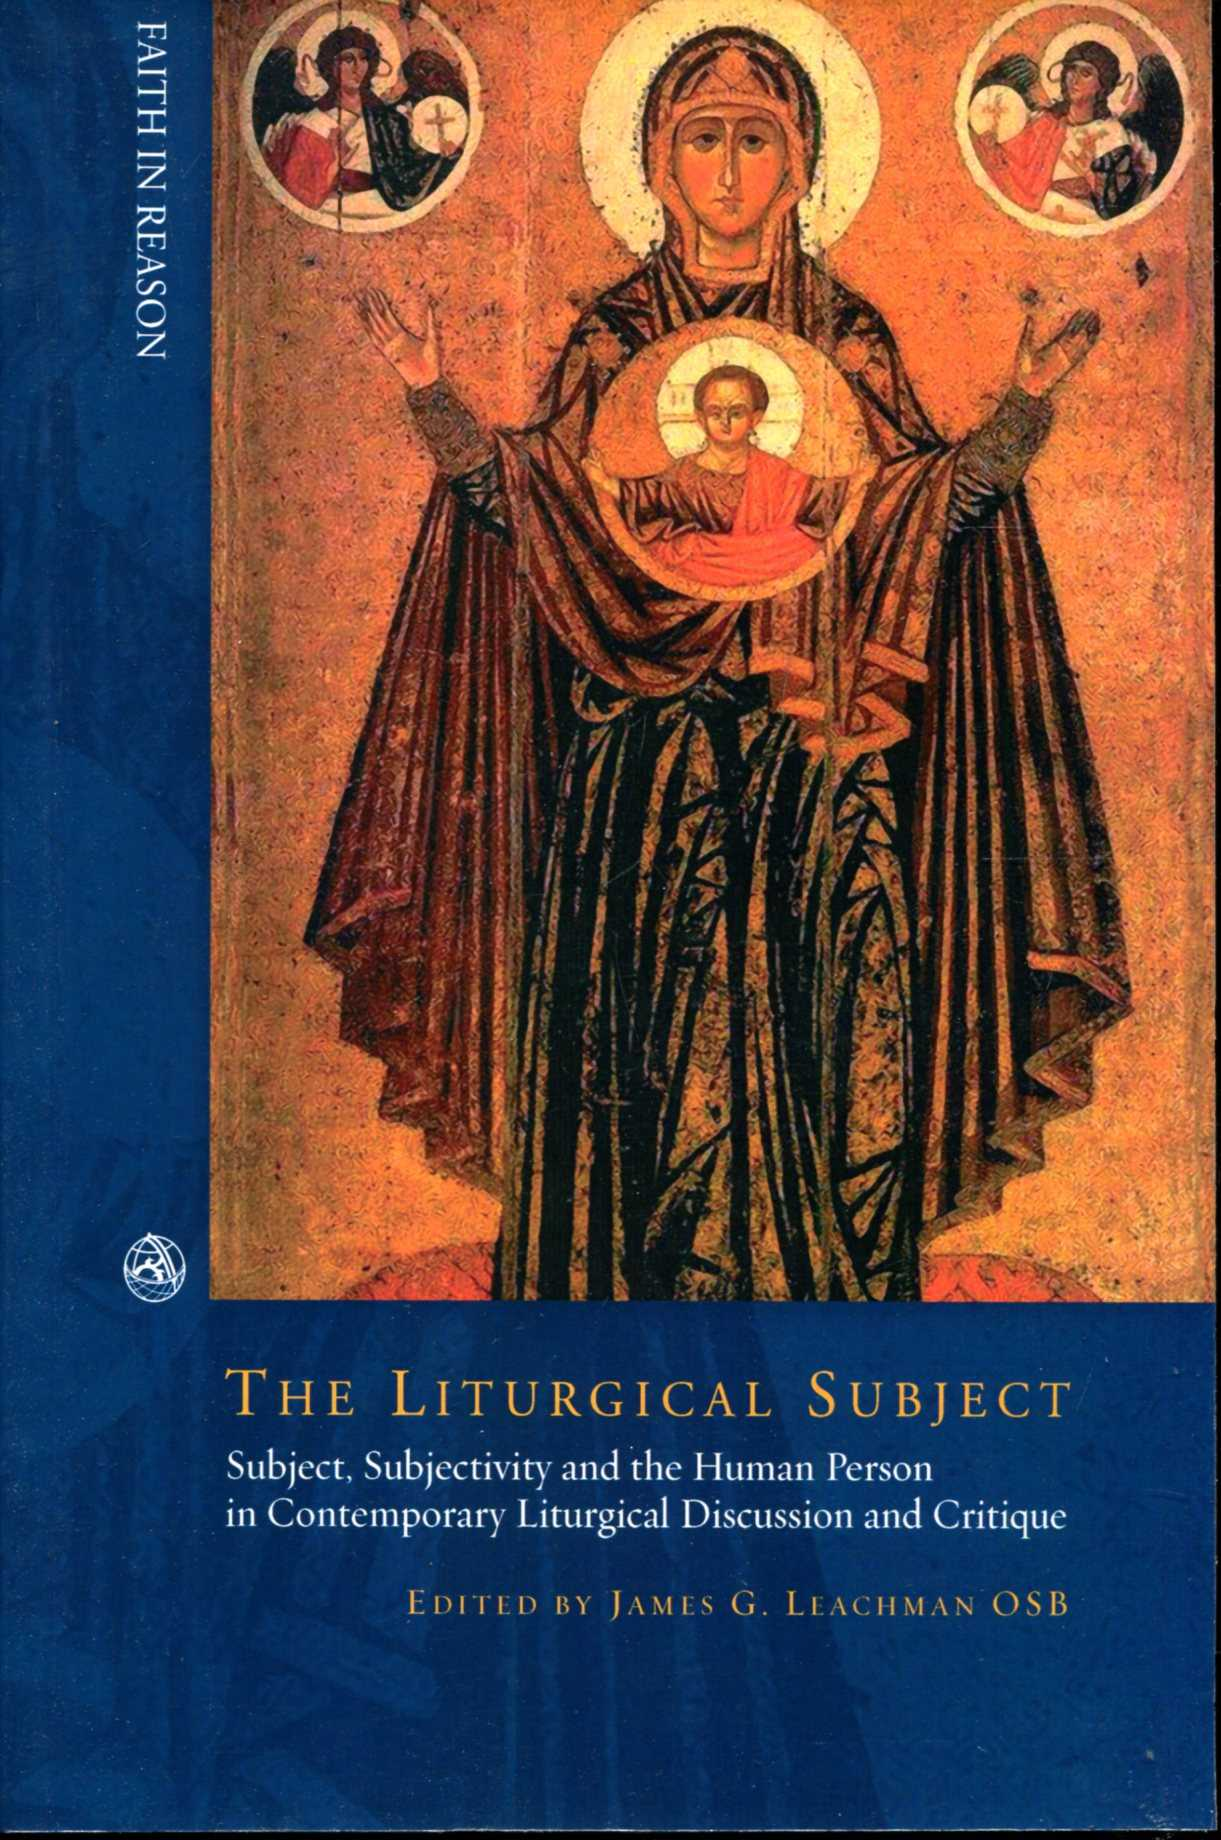 Image for The Liturgical Subject : Subject, Subjectivity and the Human Person in Contemporary Liturgical Discussion and Critique (Faith in Reason)